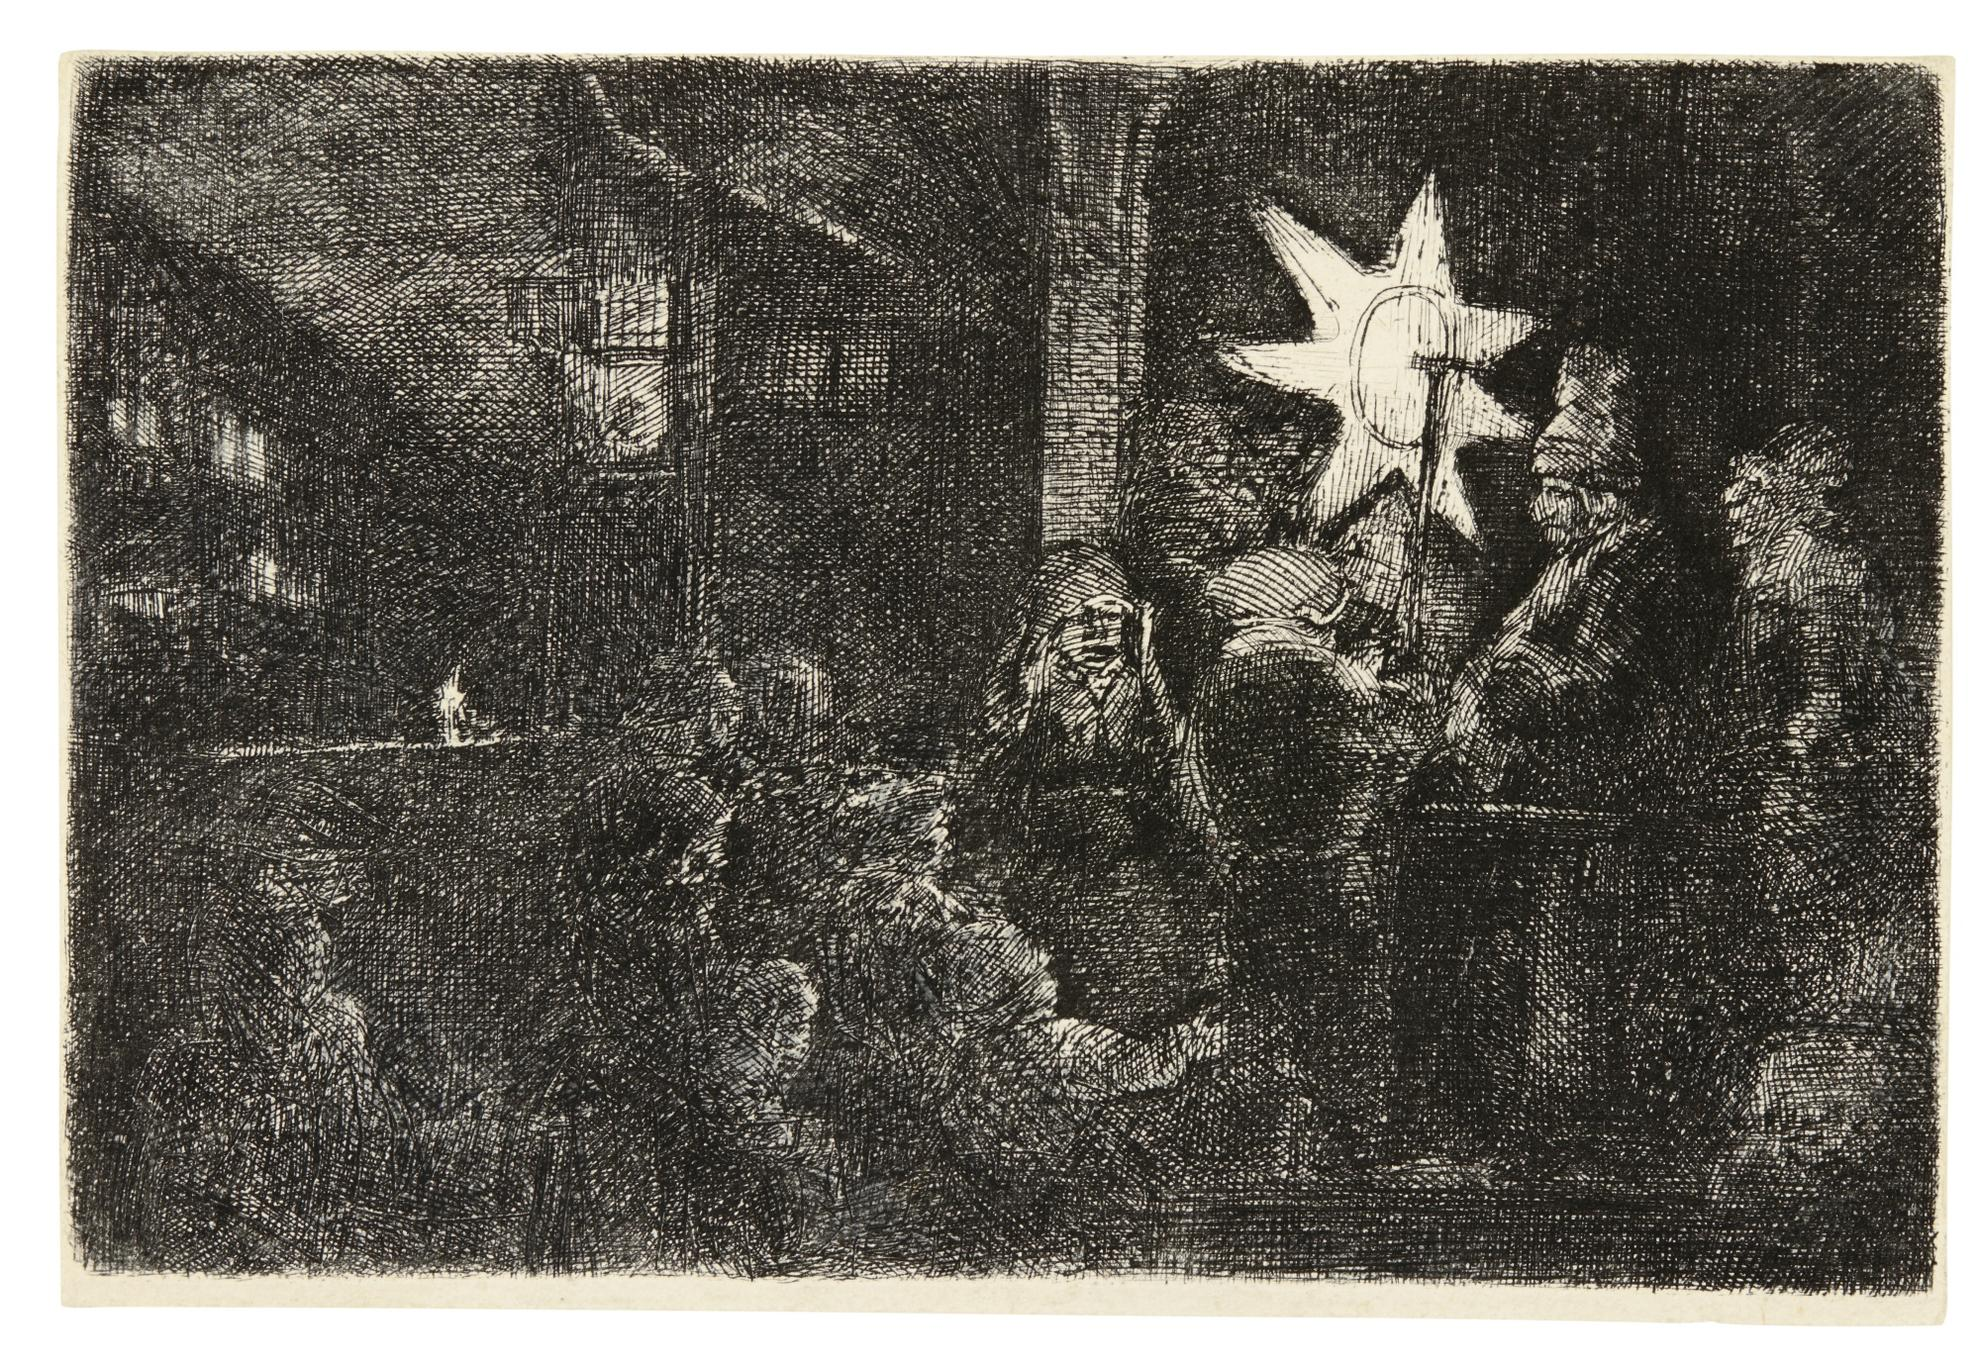 Rembrandt van Rijn-The Star Of The Kings: A Night Piece (B., Holl. 113; New Holl. 263; H. 254)-1651